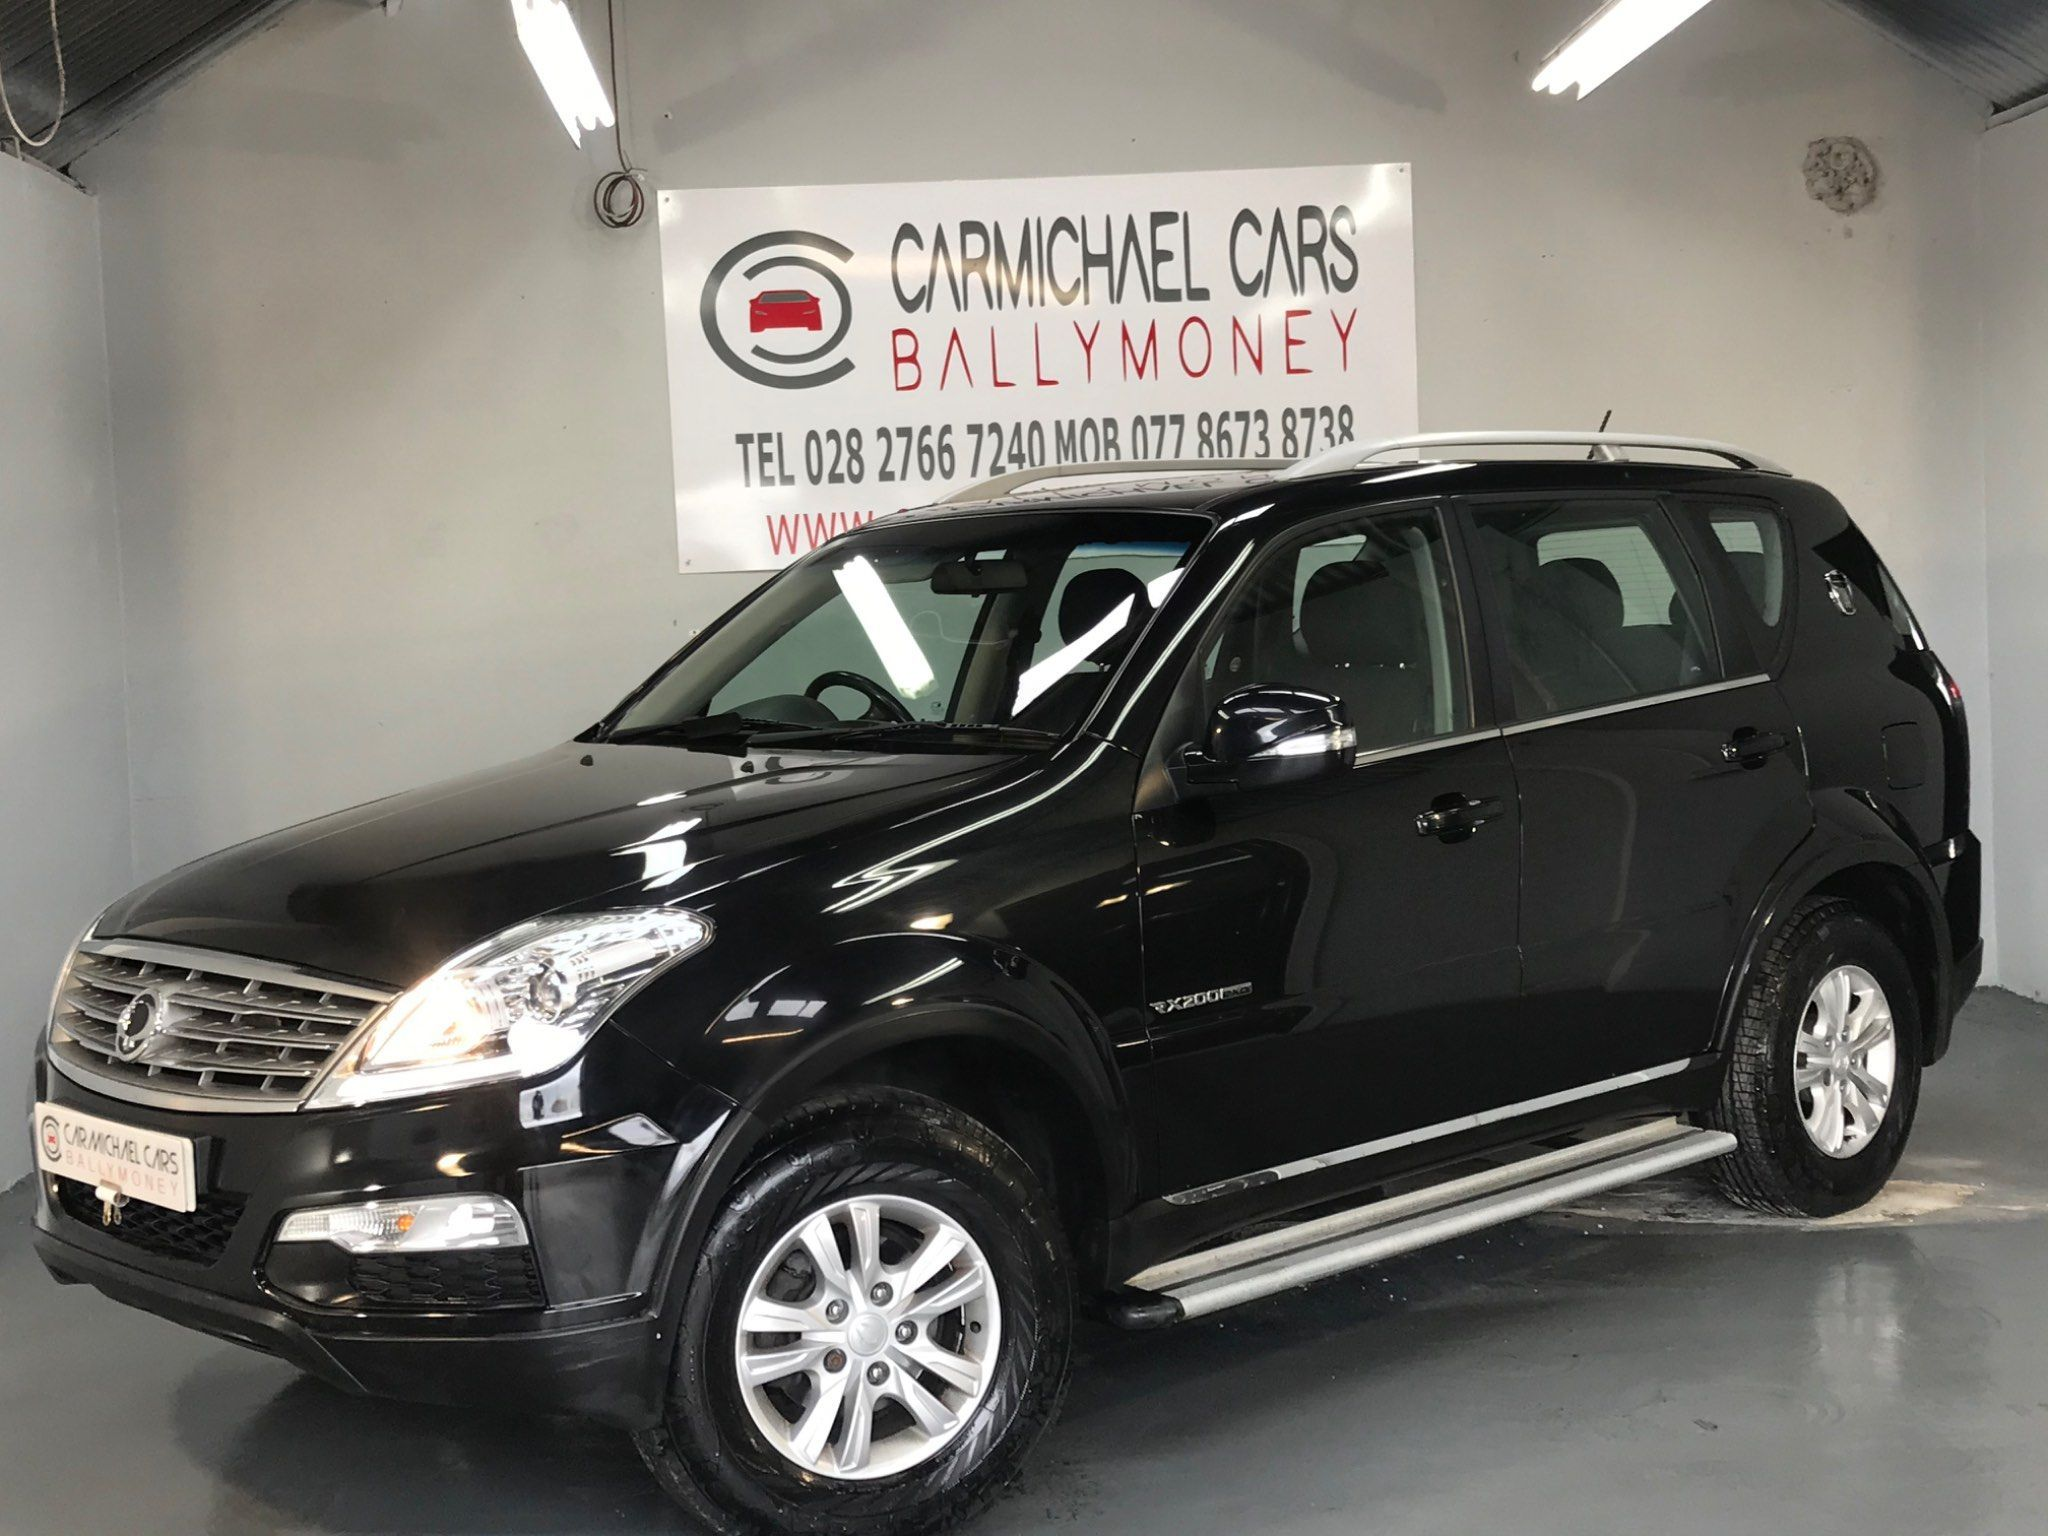 2014 SSANGYONG Rexton 2.0 TD SX 4×4 Diesel Manual ** VIEWING BY APPOINTMENT ** – Carmichael Cars Ballymoney